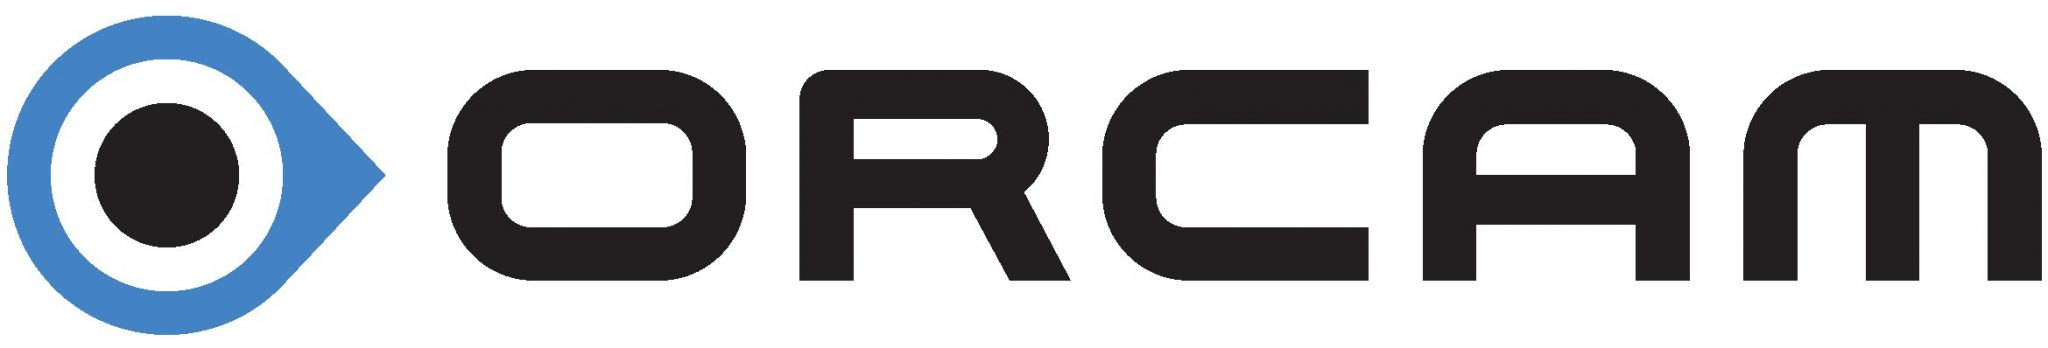 ORCAM OFFICIAL LOGO